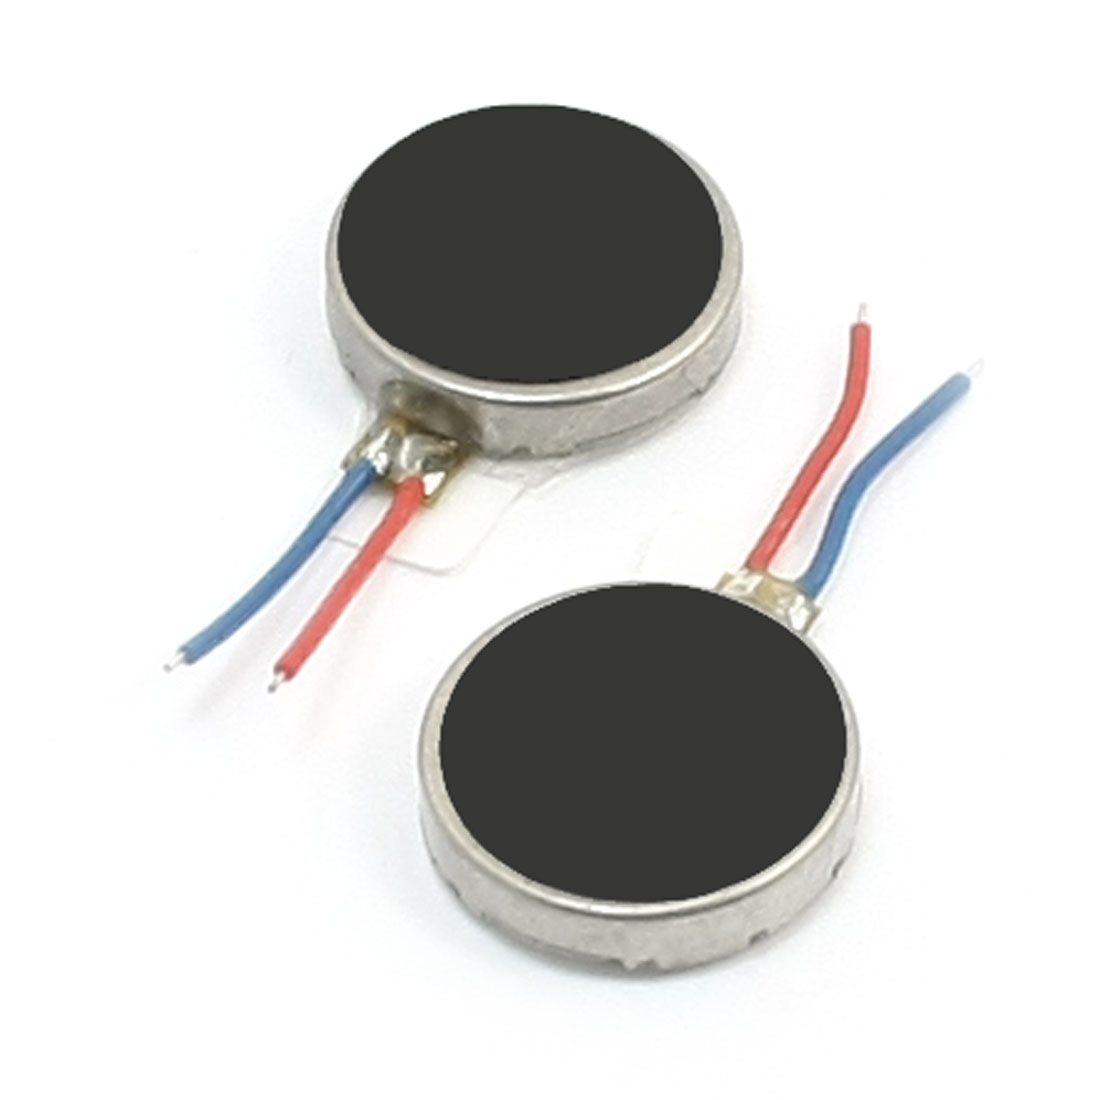 2Pcs-10mm-x-4mm-Disc-Shape-Vibrating-Vibration-Motor-for-Mobile-Phone